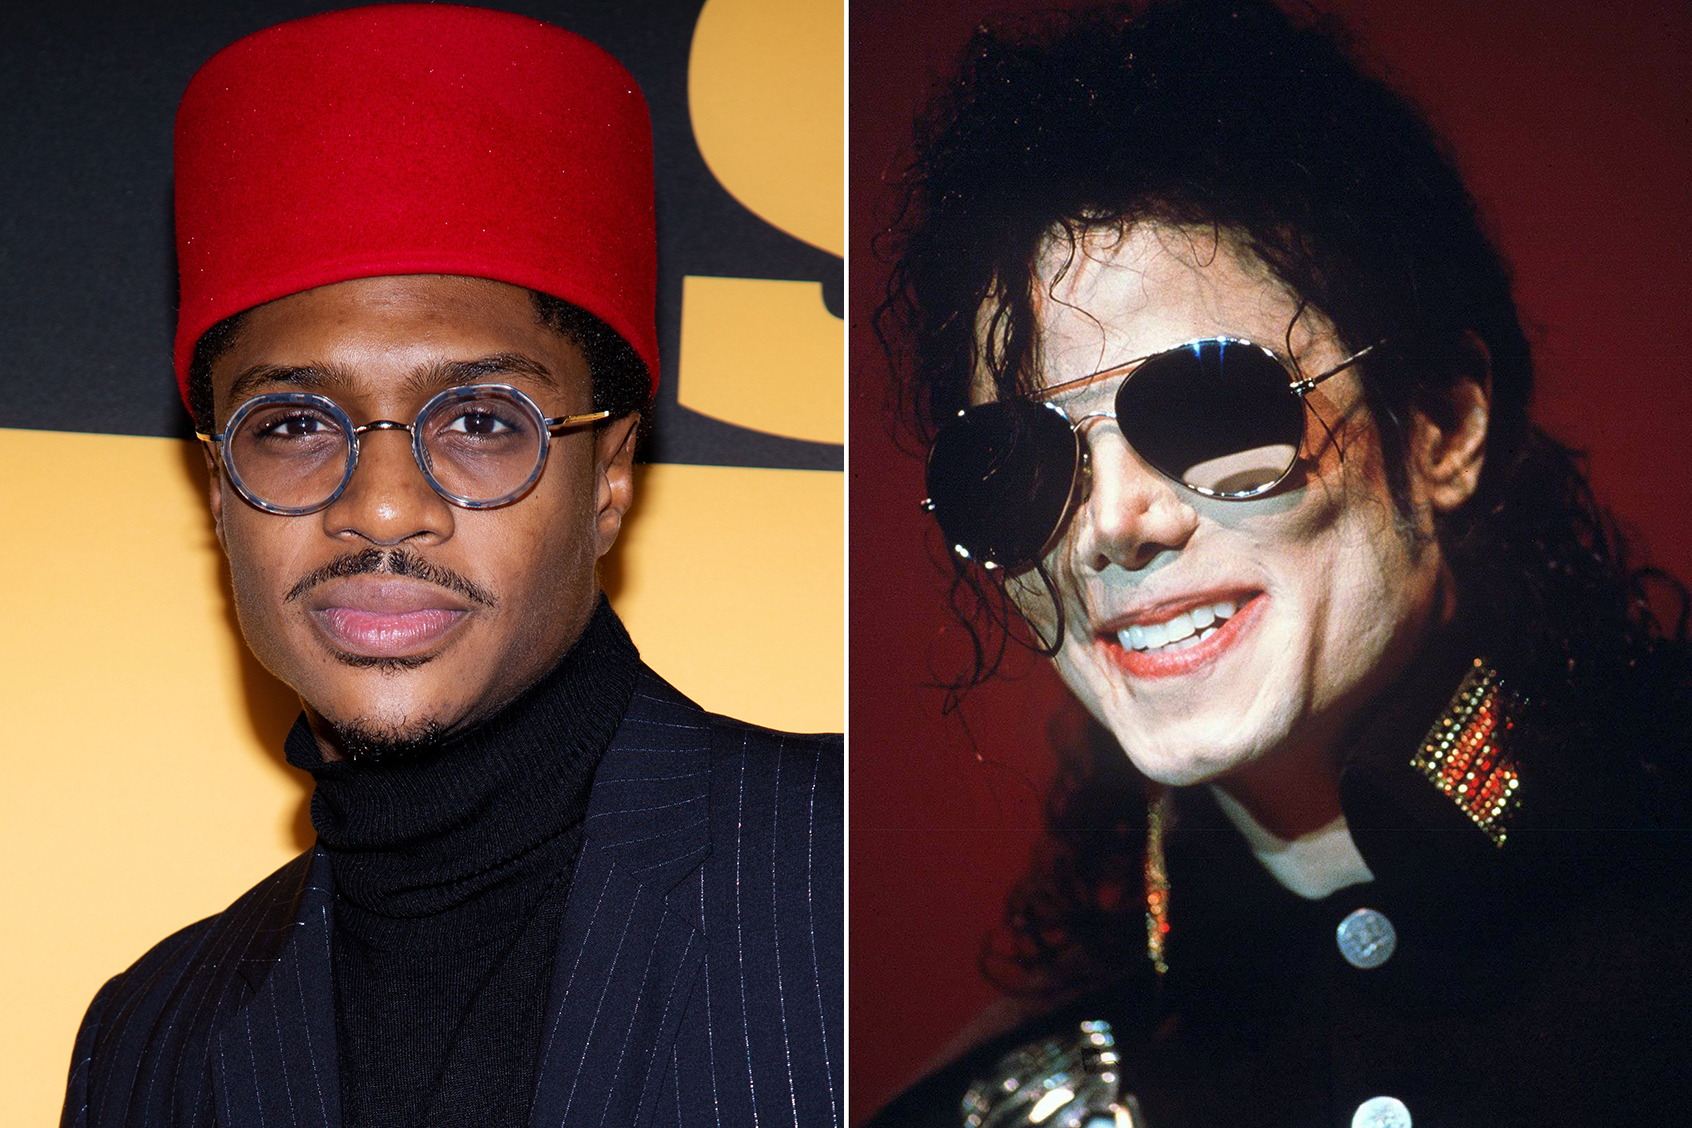 Will There Be Another Halloween Special Like The Michael Jackson Thing 2020 Ephraim Sykes Talks Becoming Michael Jackson in 2020 Musical